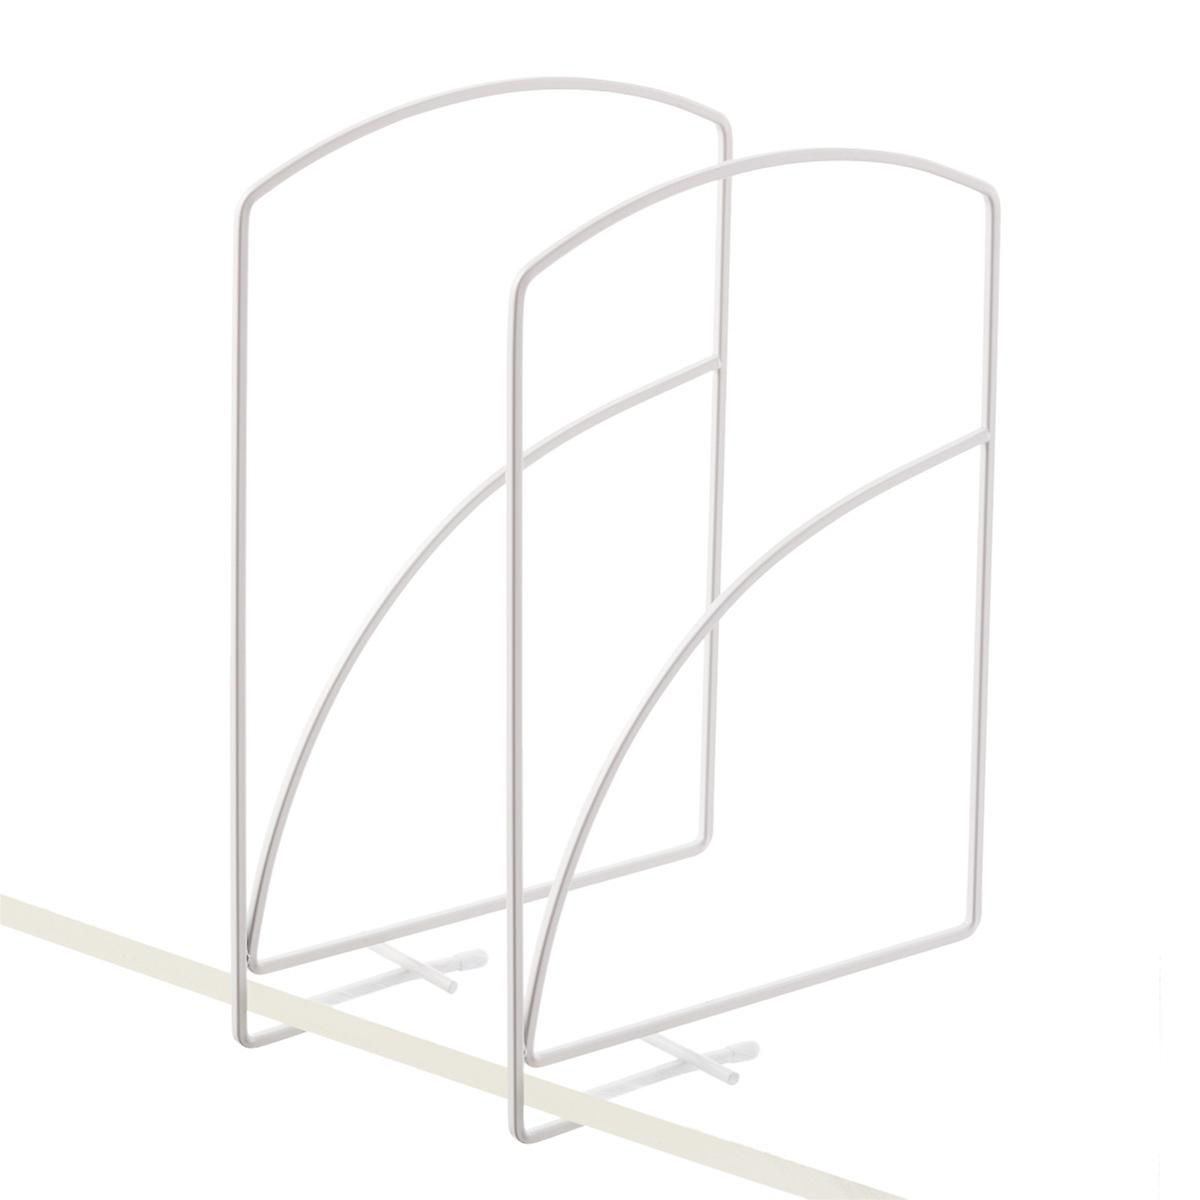 Lynk Tall Solid Shelf Dividers | The Container Store